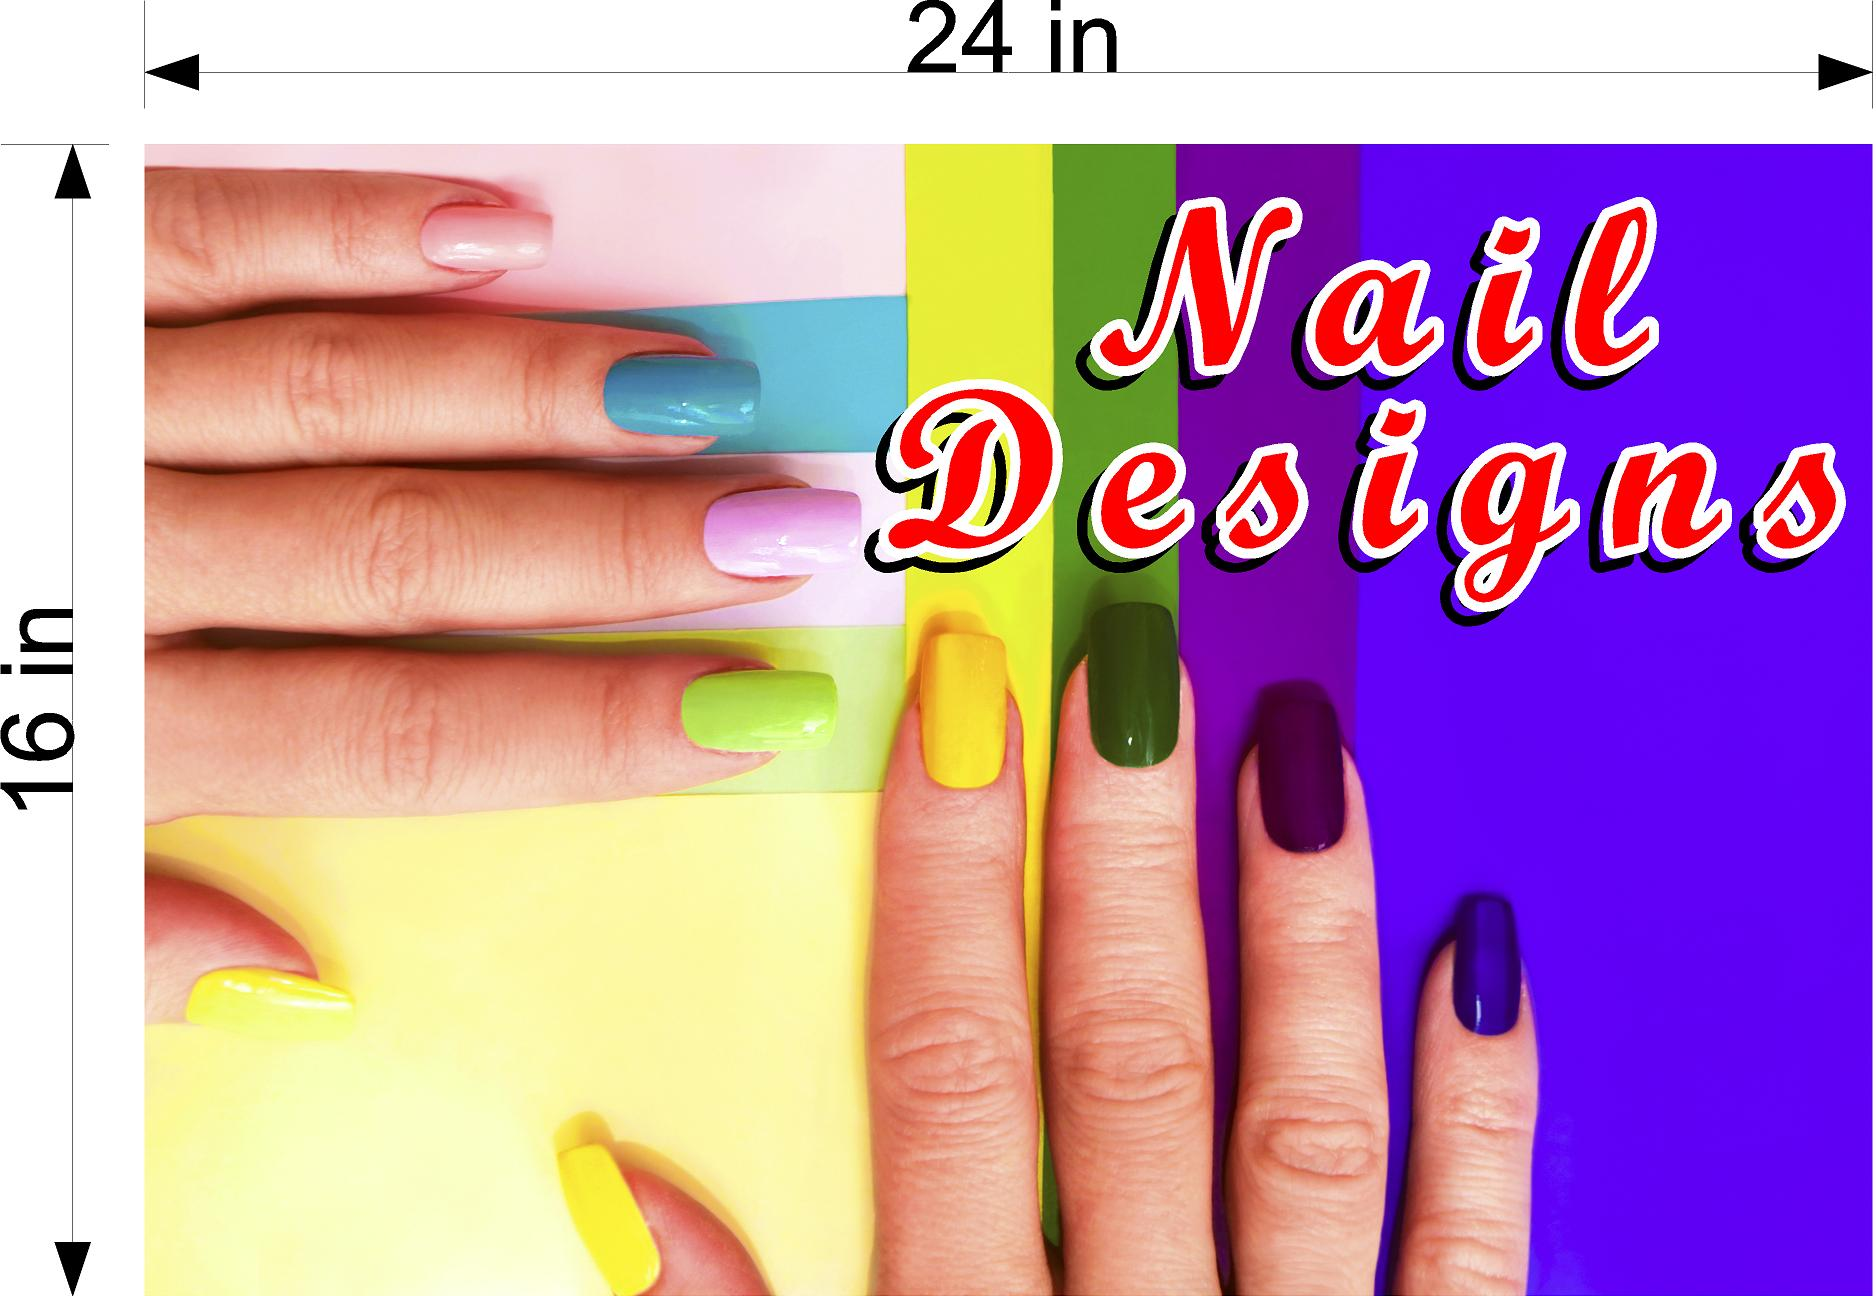 Nail Designs 06 Photo-Realistic Paper Poster Premium Matte Interior Inside Sign Adverting Marketing Wall Window Non-Laminated Horizontal